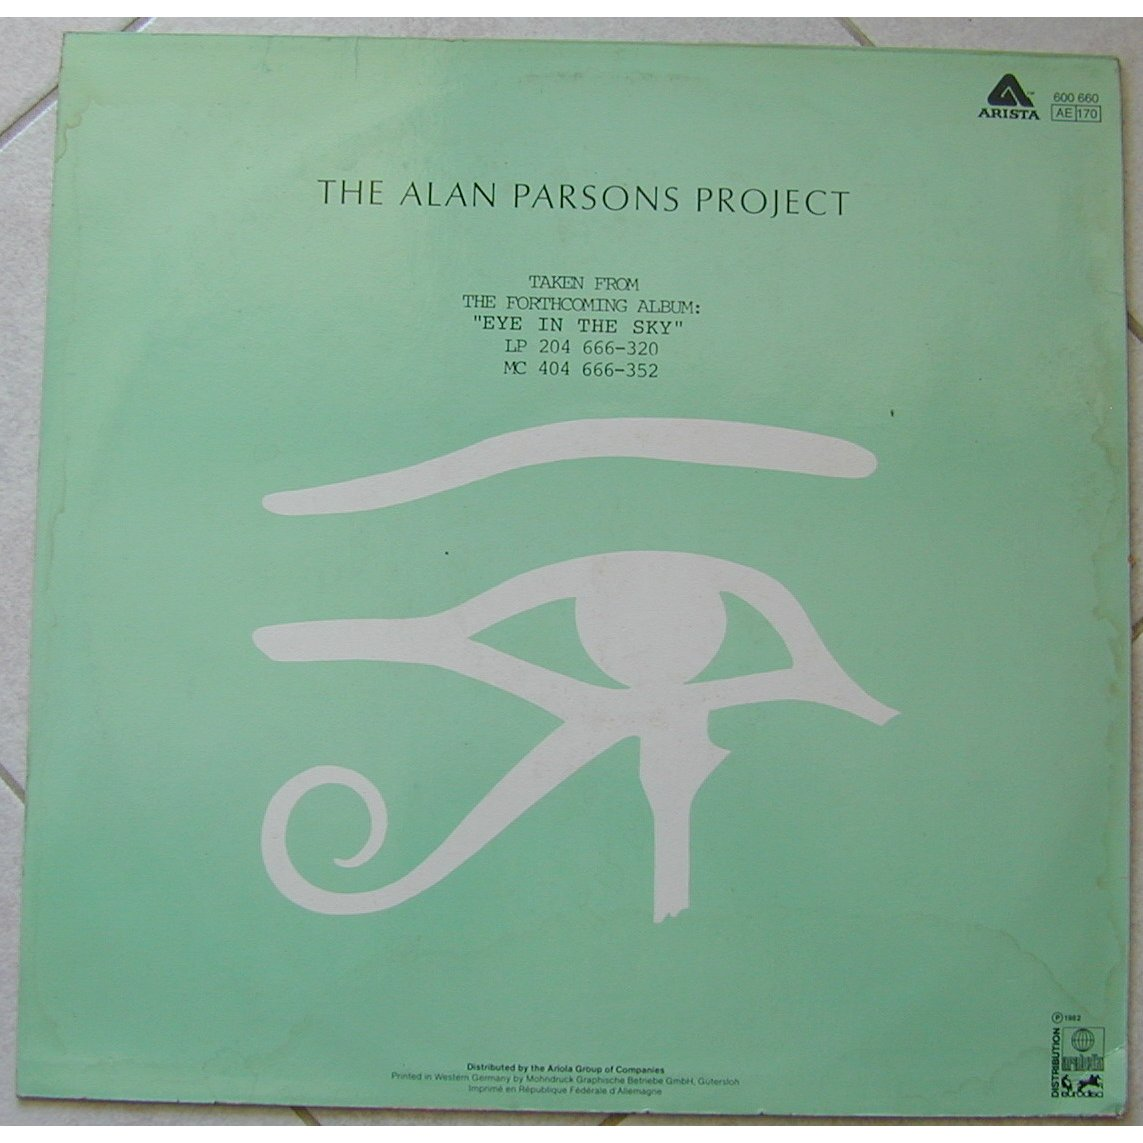 sirius by the alan parsons project Sirius - the alan parsons project - free sheet music and tabs for drums, crystal piano, muted guitar, distortion guitar, alto sax, clavinet, violin.